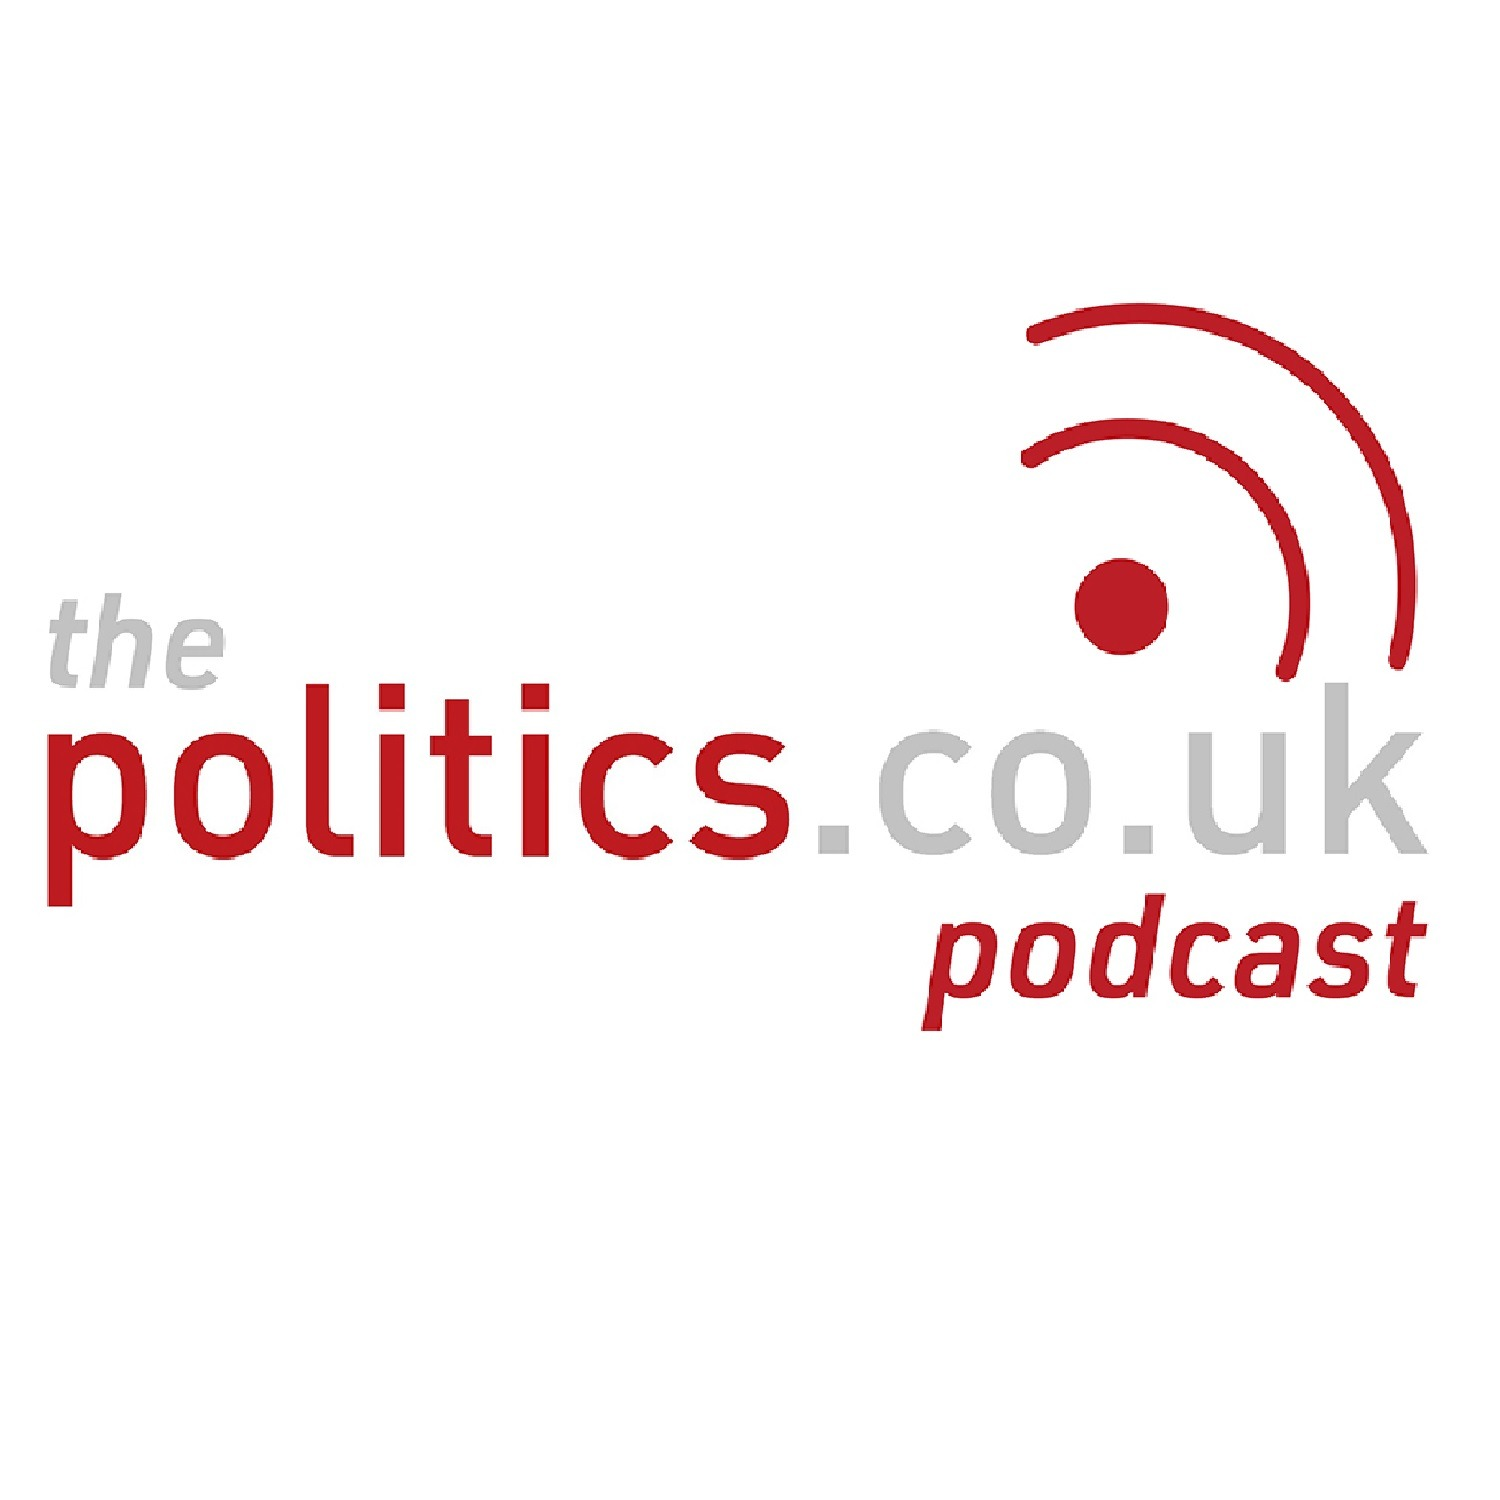 The Politics.co.uk Podcast - the Royal family and political neutrality